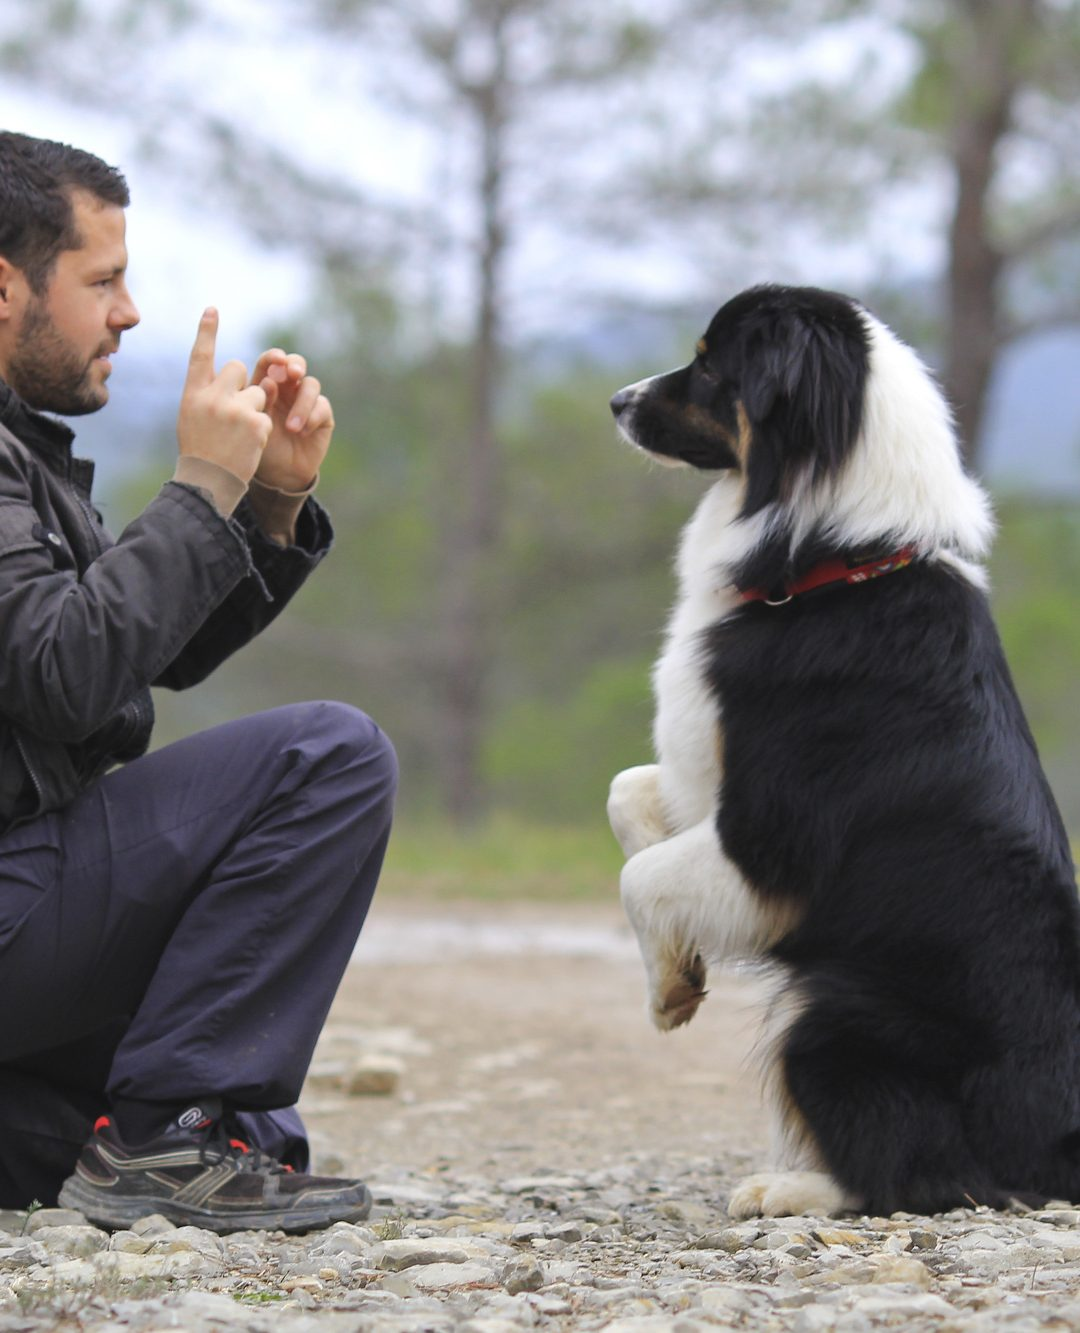 5 Impressive Dog Tricks Any Pooch Can Learn